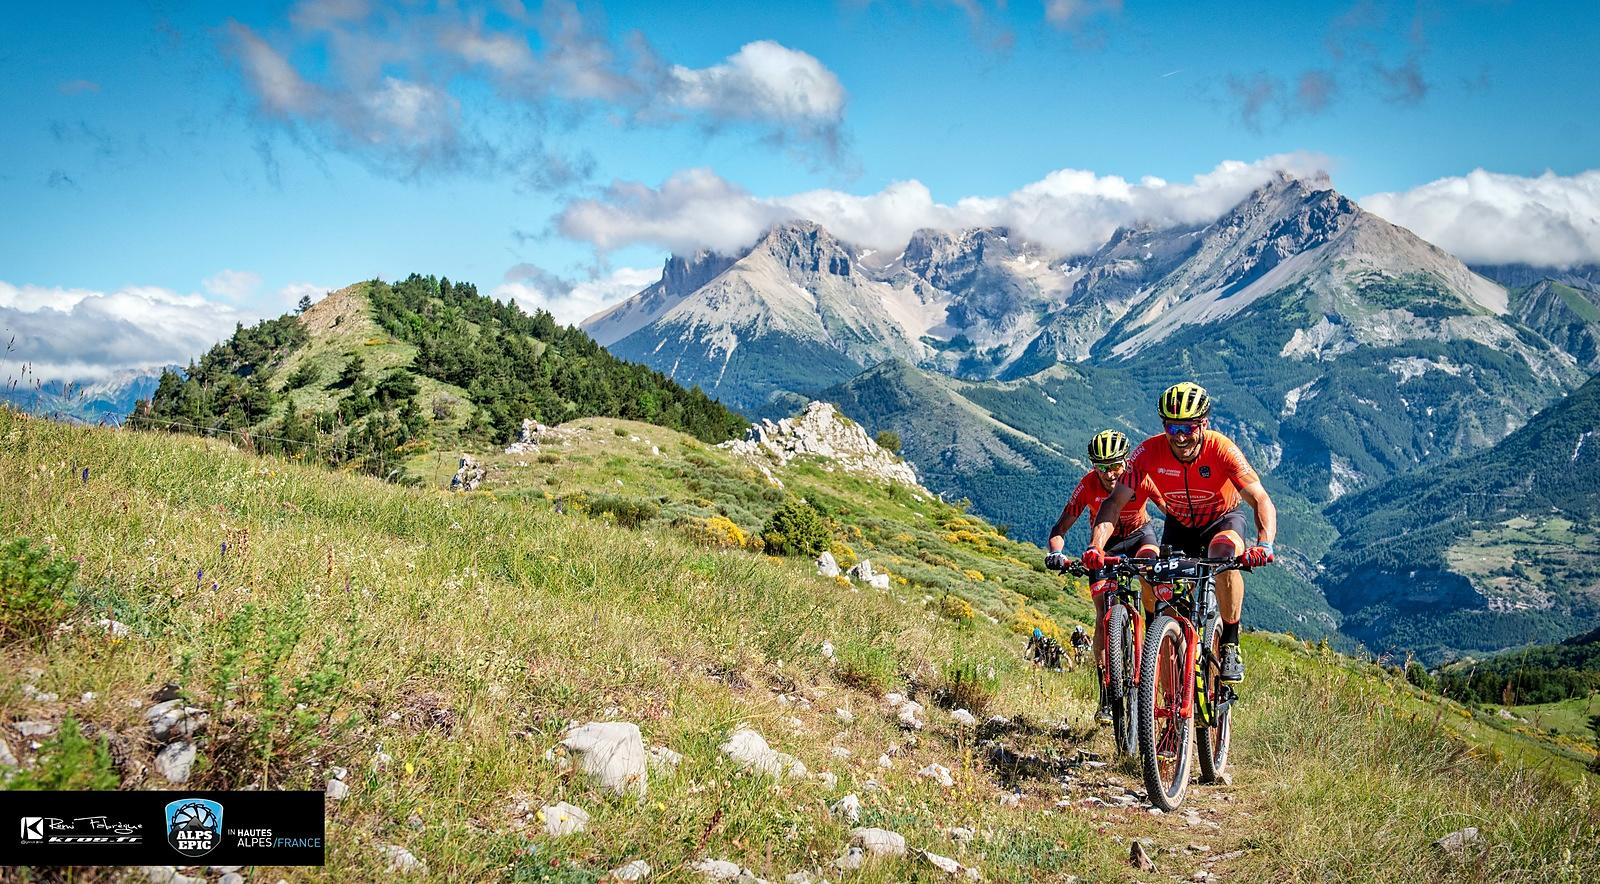 VendrediAlps_AgenceKros_RemiFABREGUE_(8_sur_19)